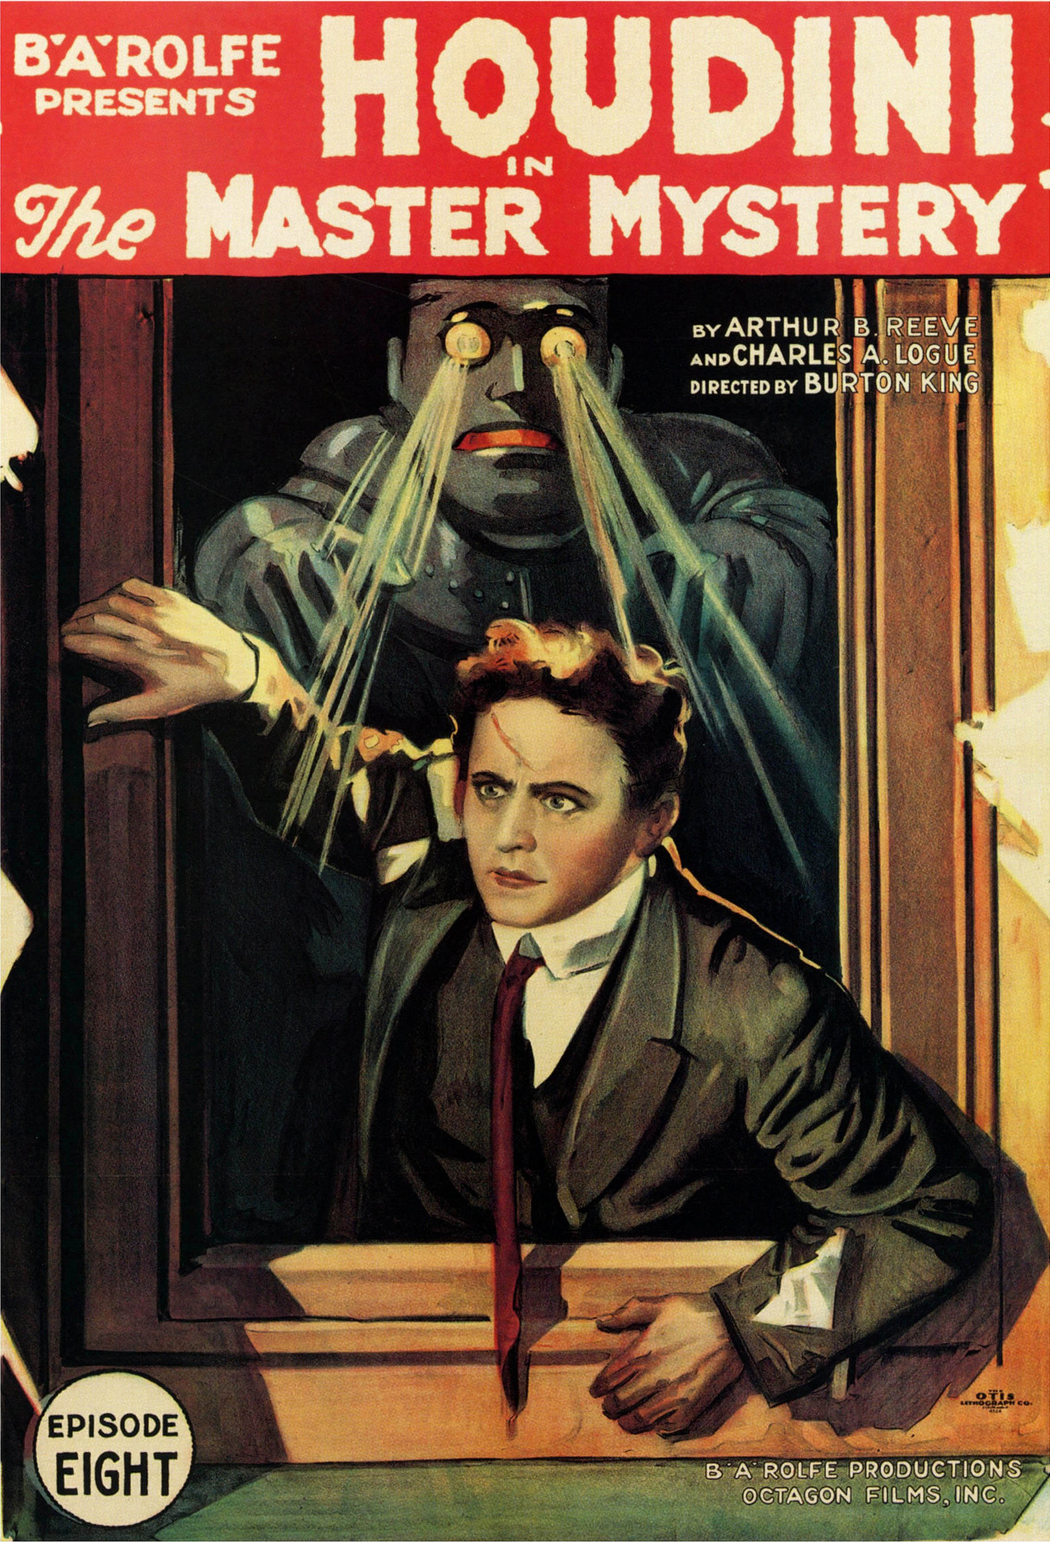 Poster for 'The Mastery Mystery' (1919) with Harry Houdini, with Q the Automaton (via Wikimedia)